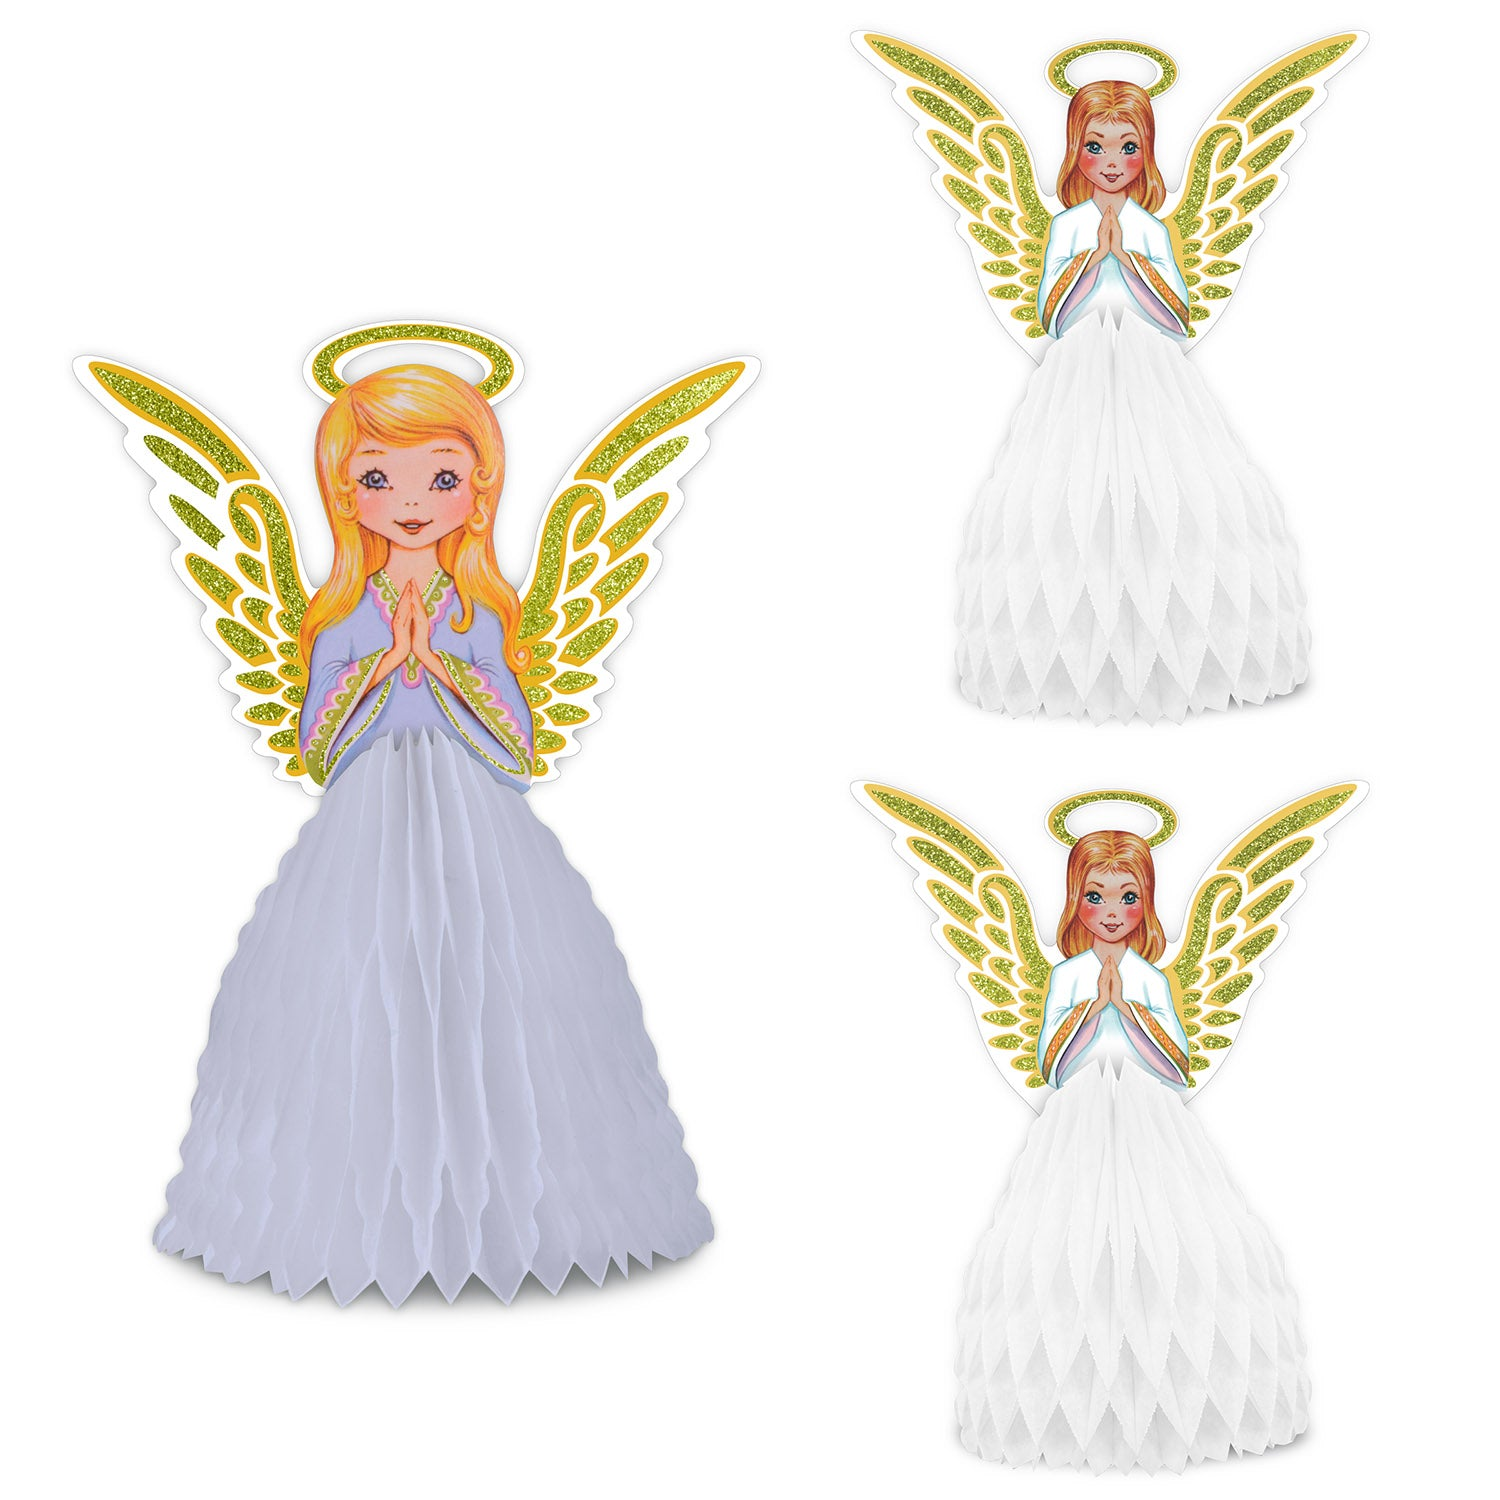 Vintage Christmas Angel Ctrpc Set (3/Pkg) by Beistle - Winter/Christmas Theme Decorations